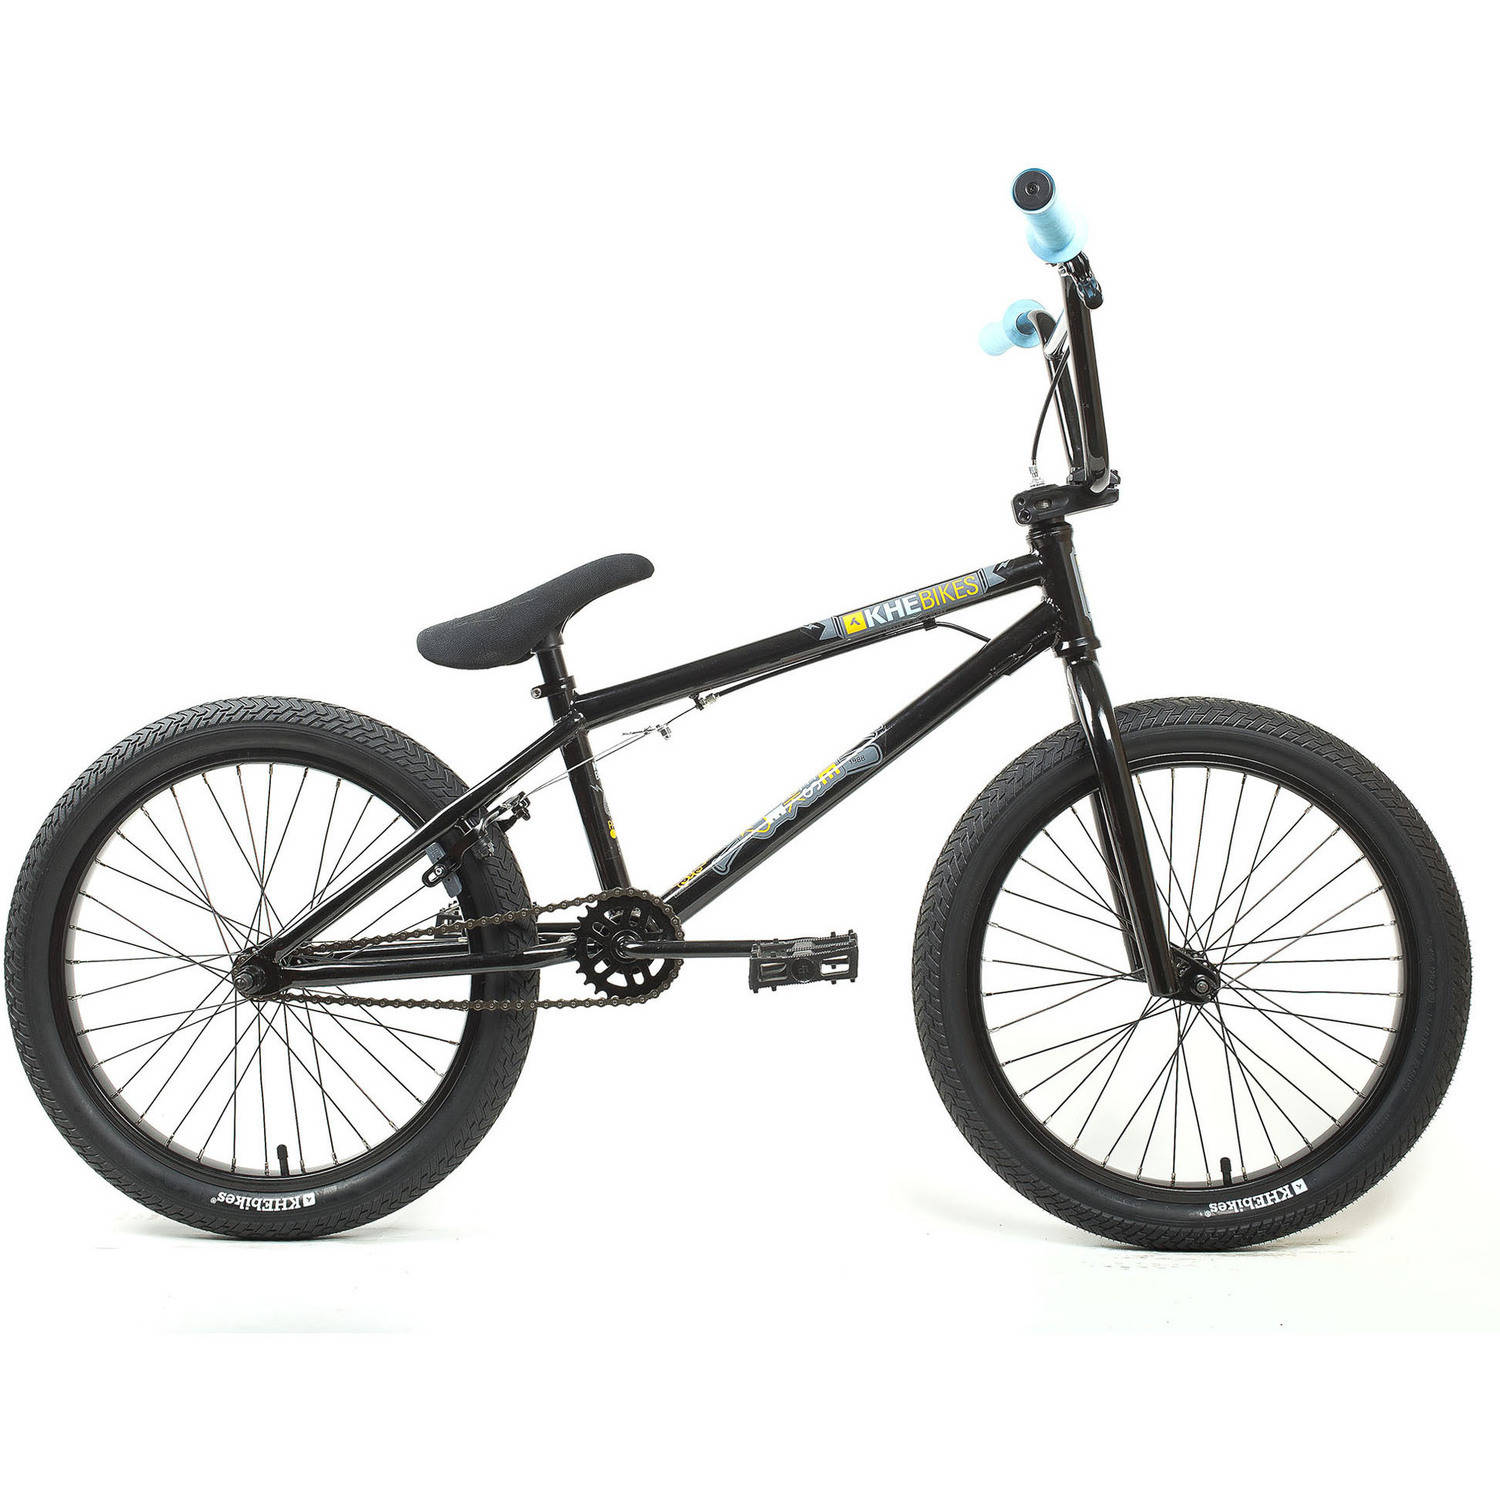 KHE Park One BMX Bicycle by Cycle Force Group